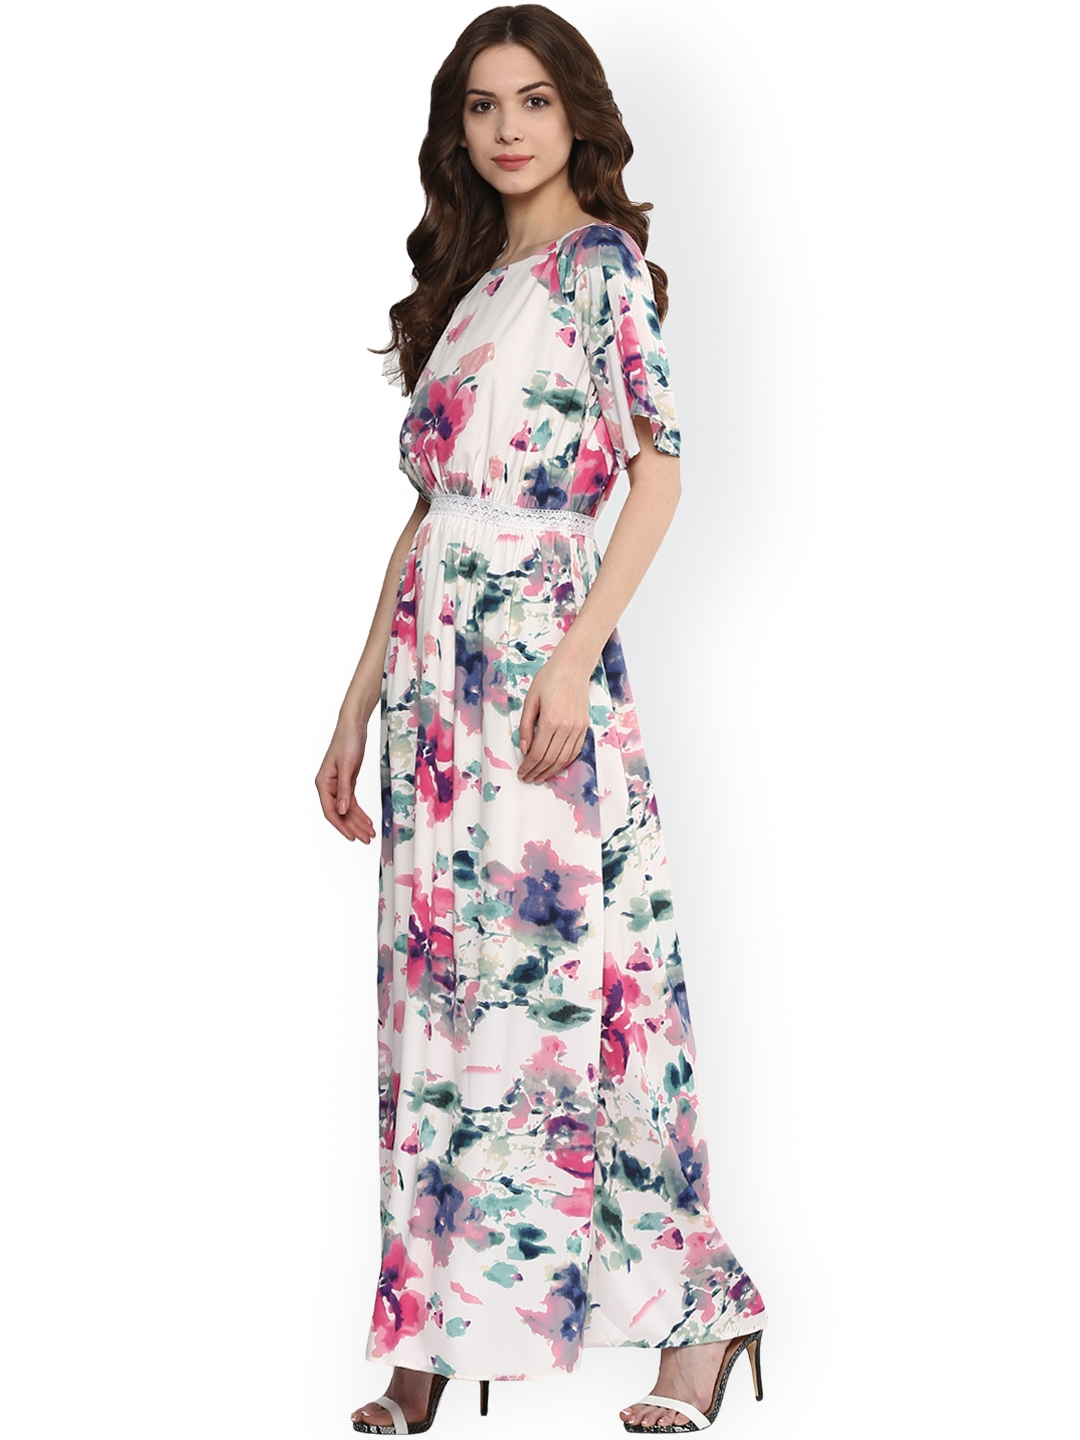 ff74127581a7 Buy Harpa Women Off White Floral Print Maxi Dress - Dresses for ...